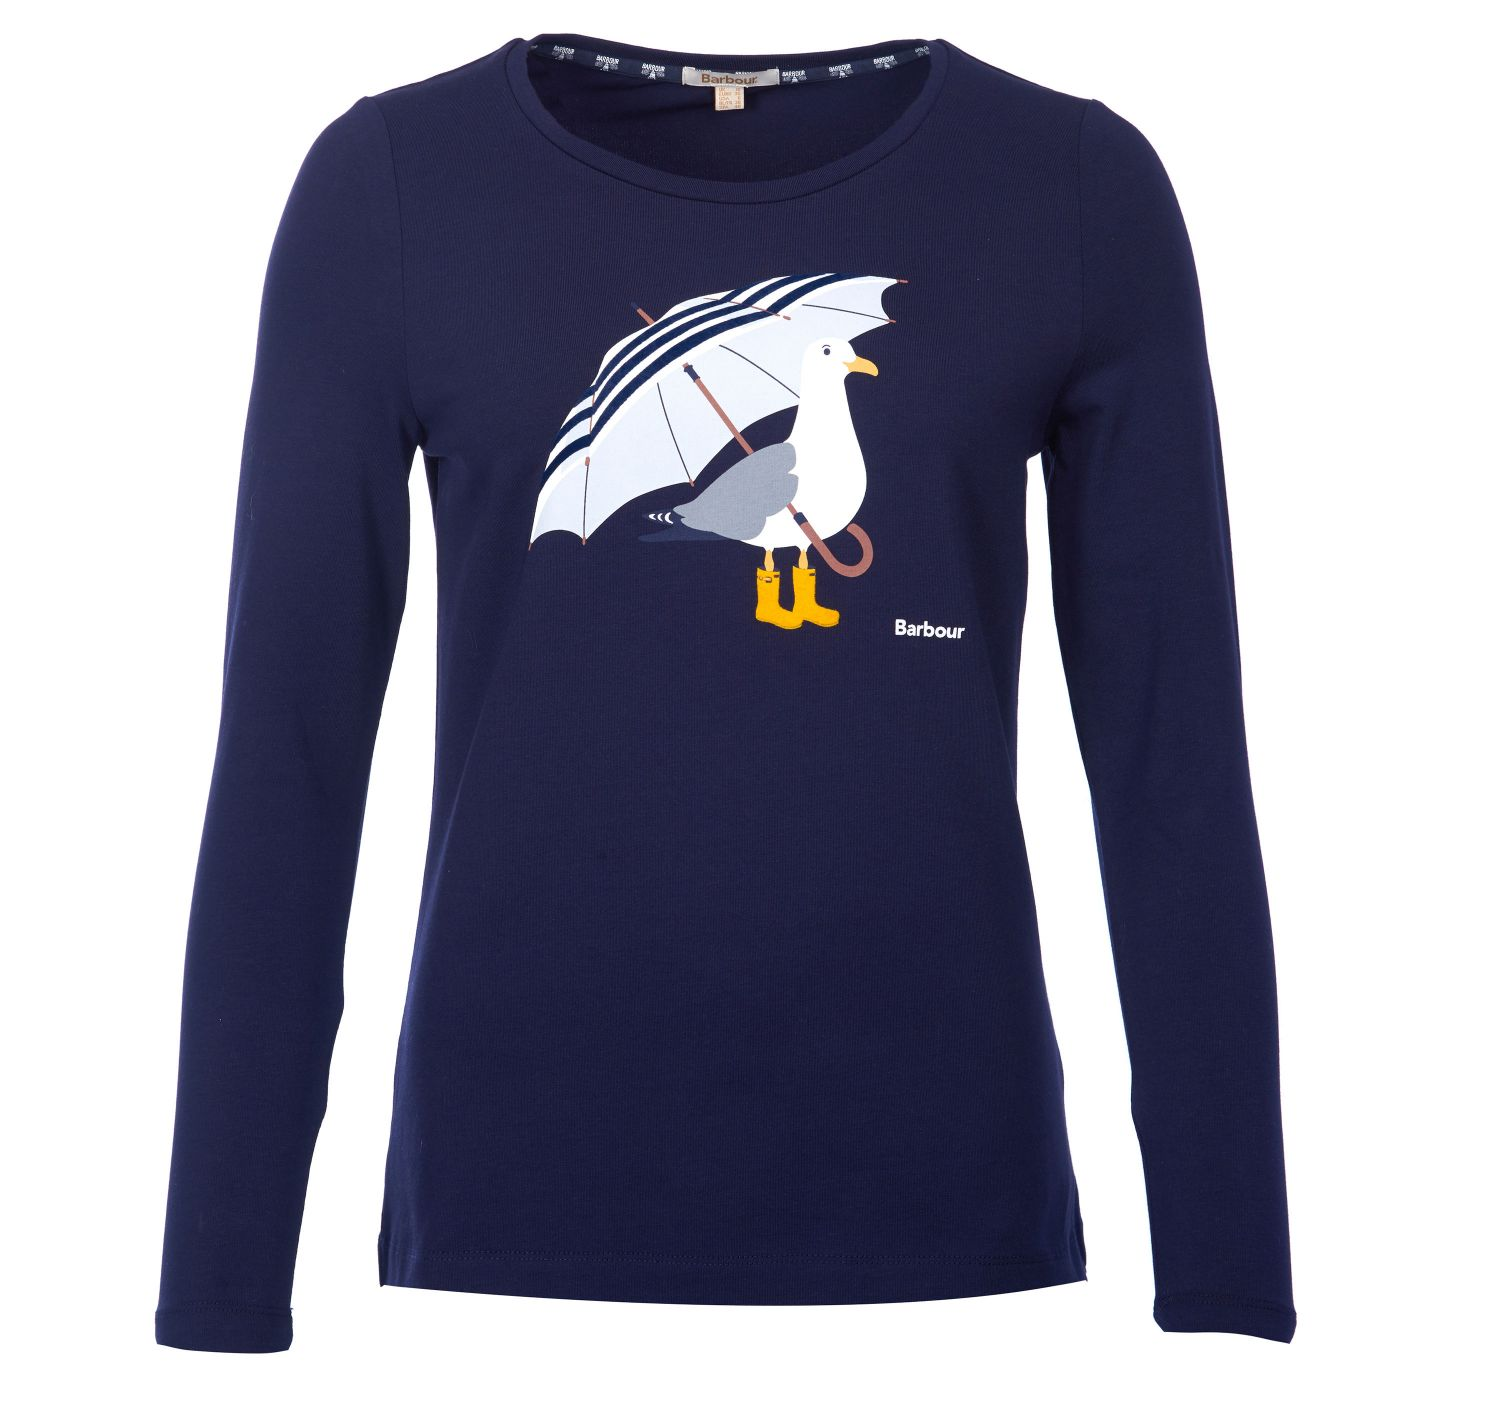 barbour-sidmouth-long-sleeved-tee-caitlin elizabeth james-seagull.jpg